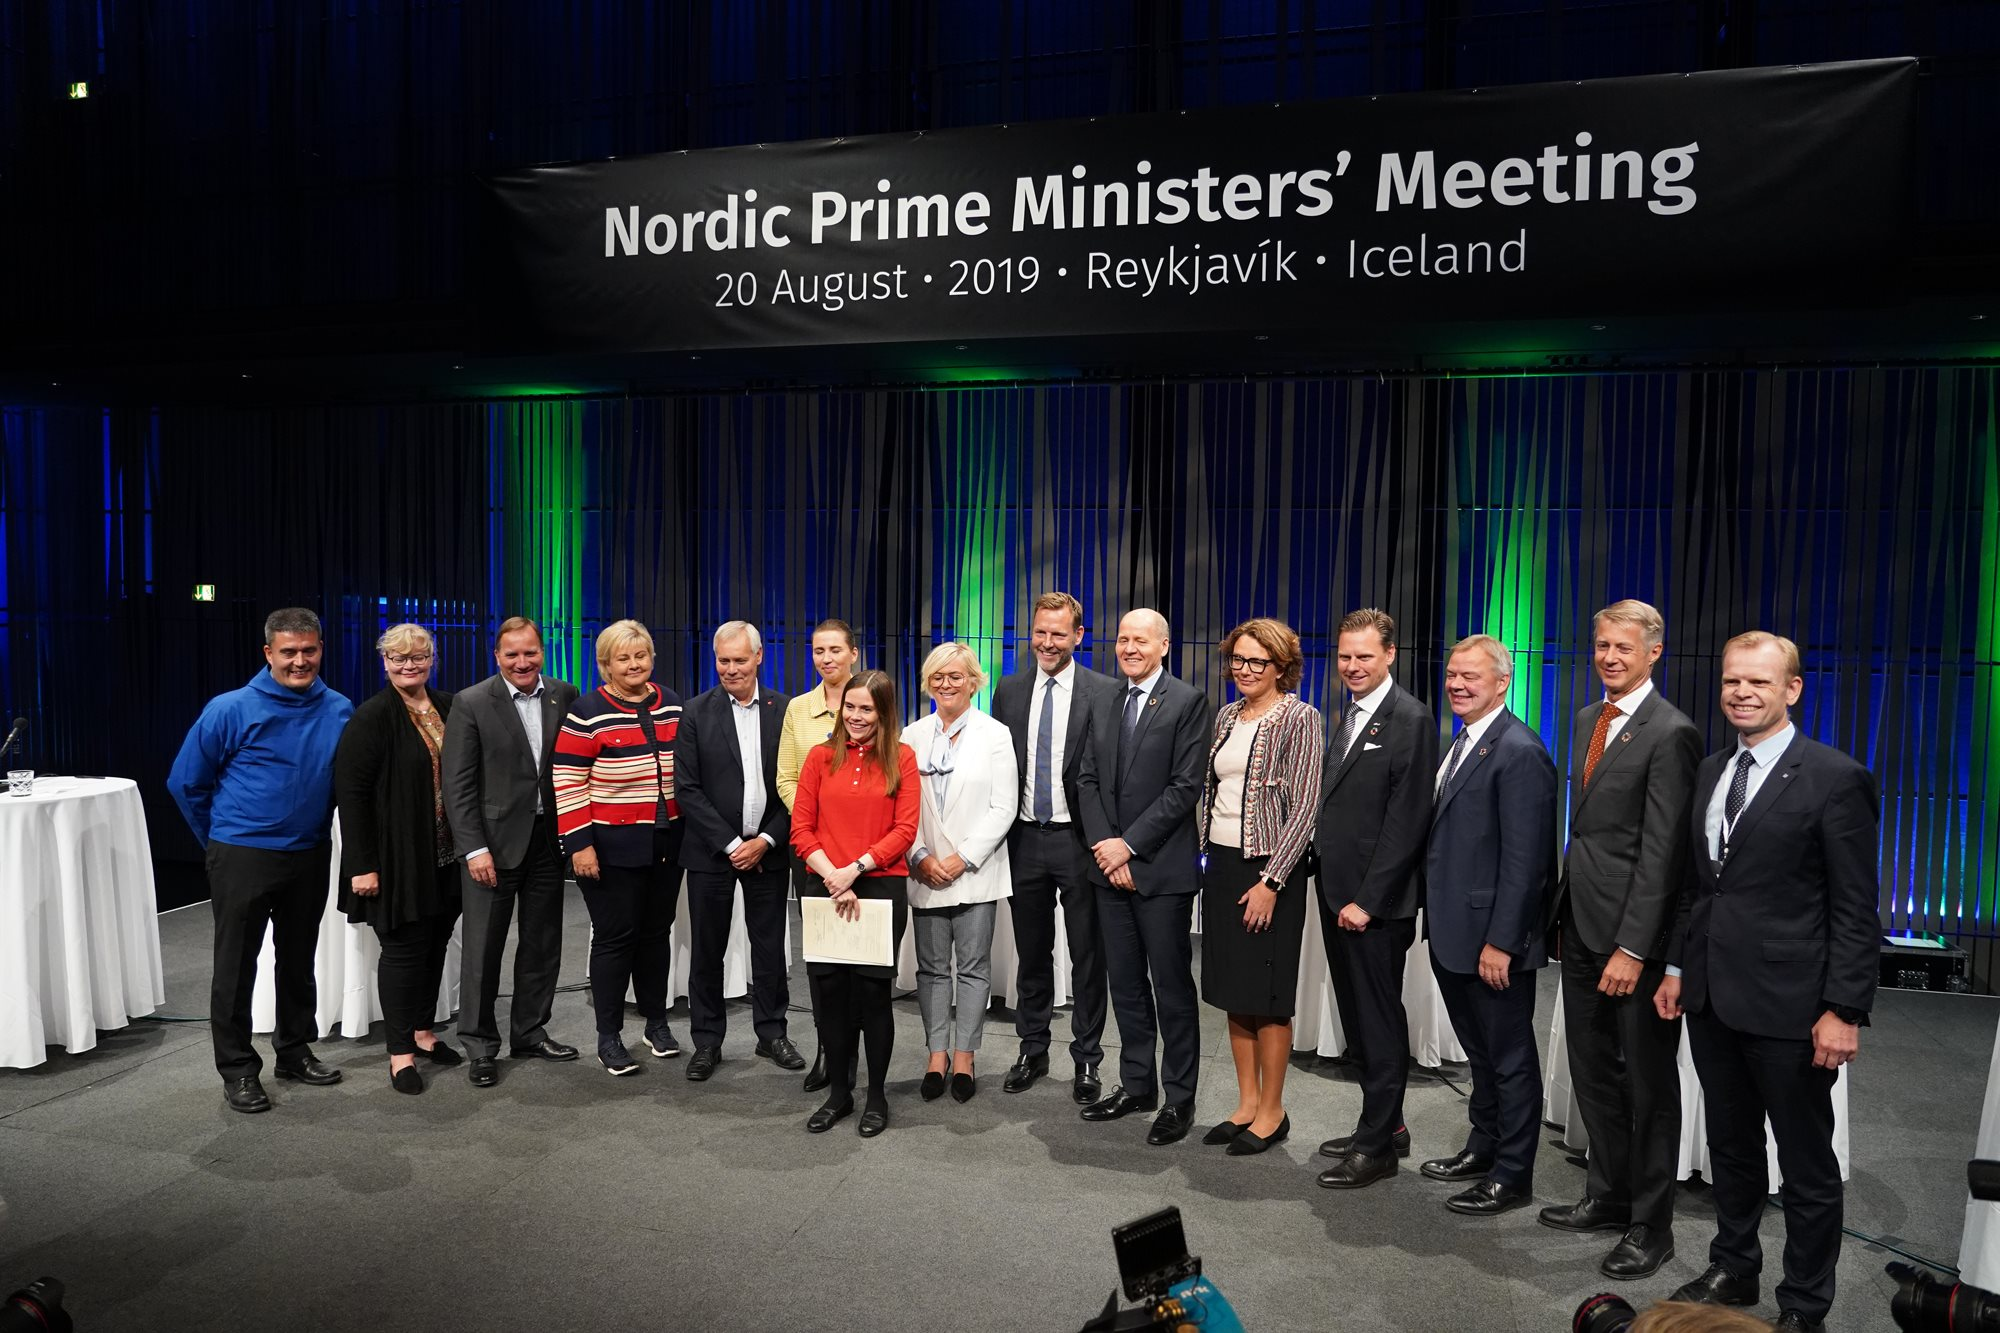 nordic prime ministers' meeting